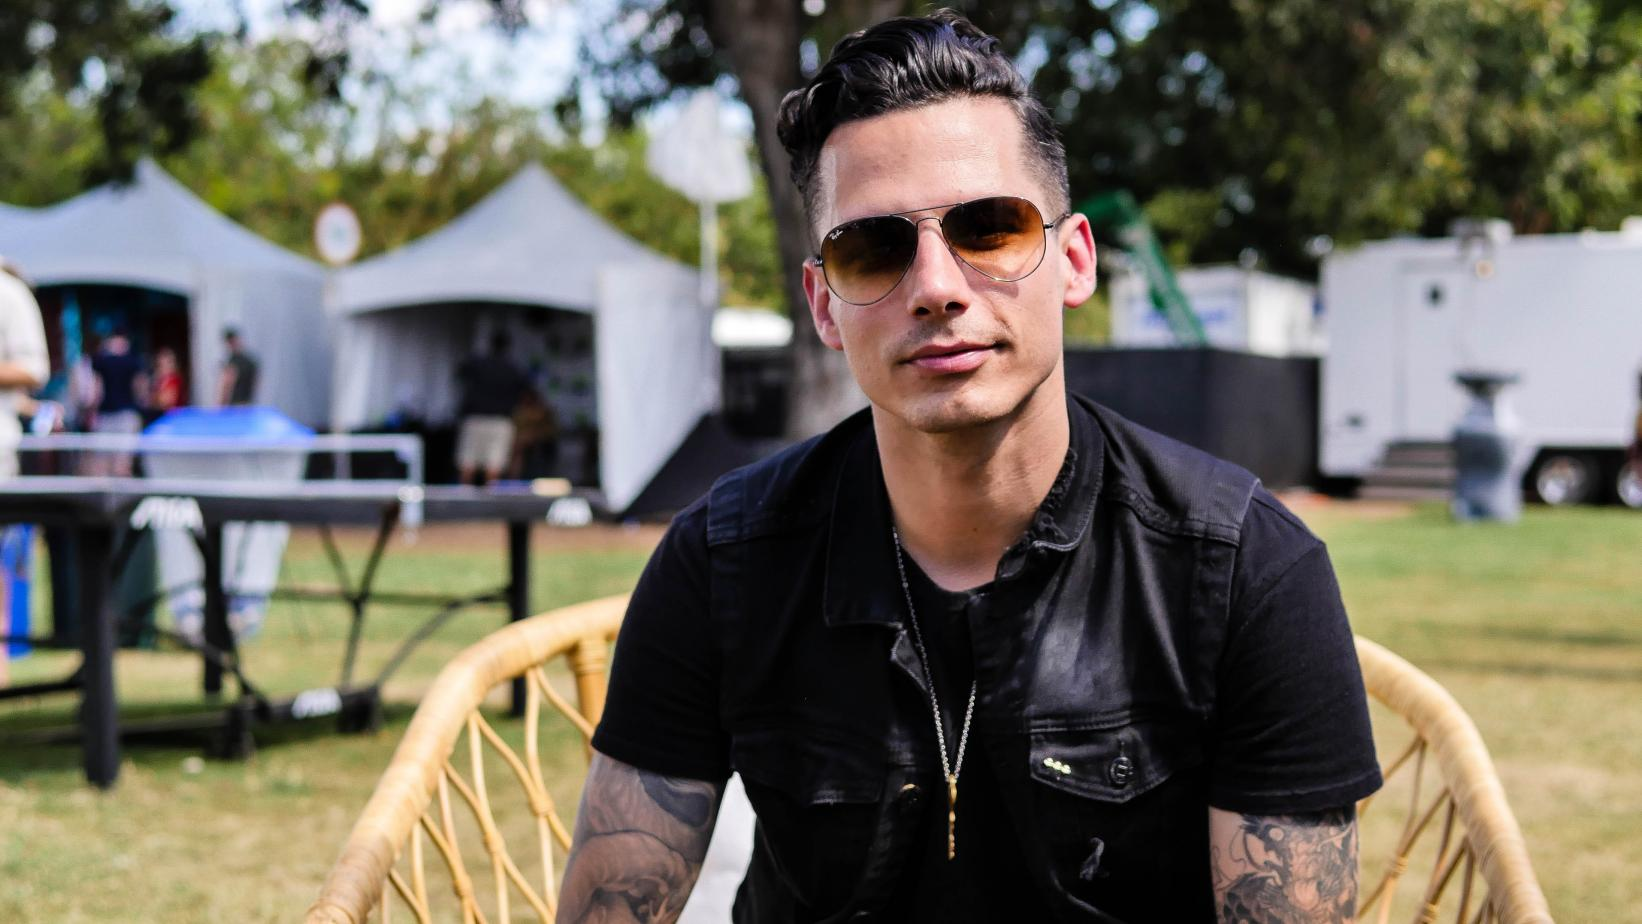 Devin Dawson photographed at the 2017 ACL Music Festival